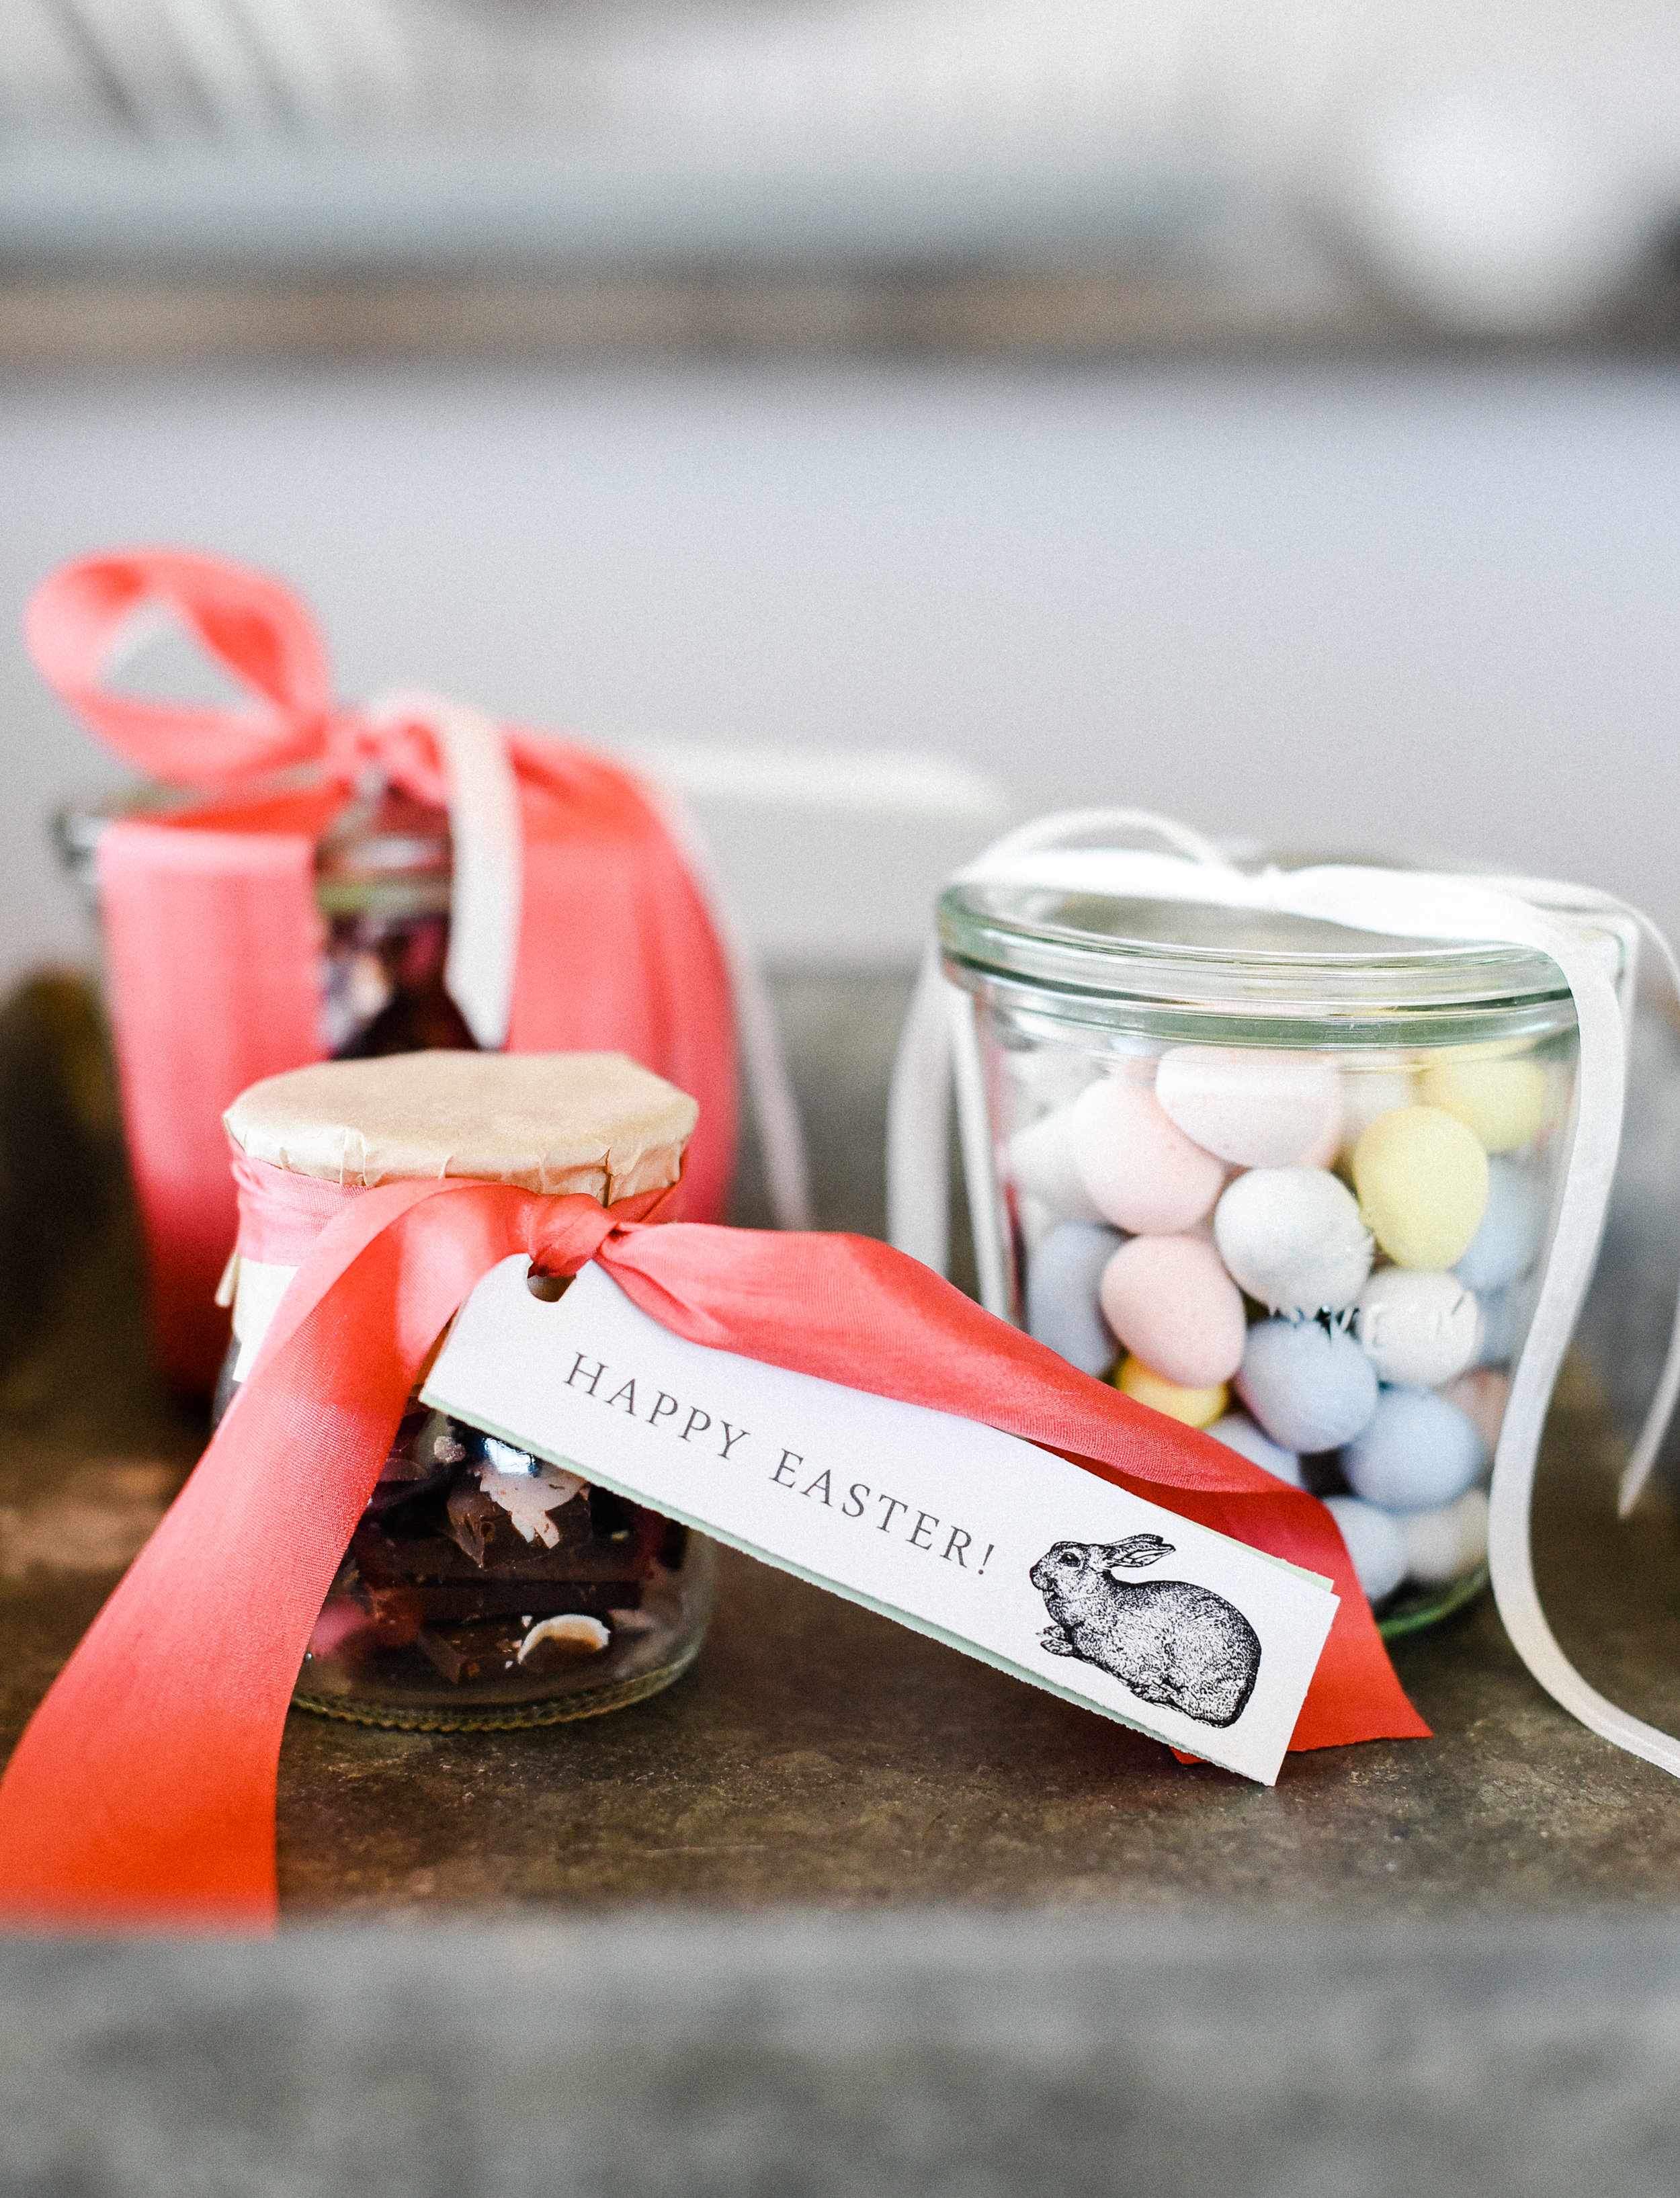 Turn a few chocolate bars into sweet Easter treats! These easy Easter gifts are so cute with free printable gift tags! #easter #eastercrafts #easterbasket boxwoodavenue.com